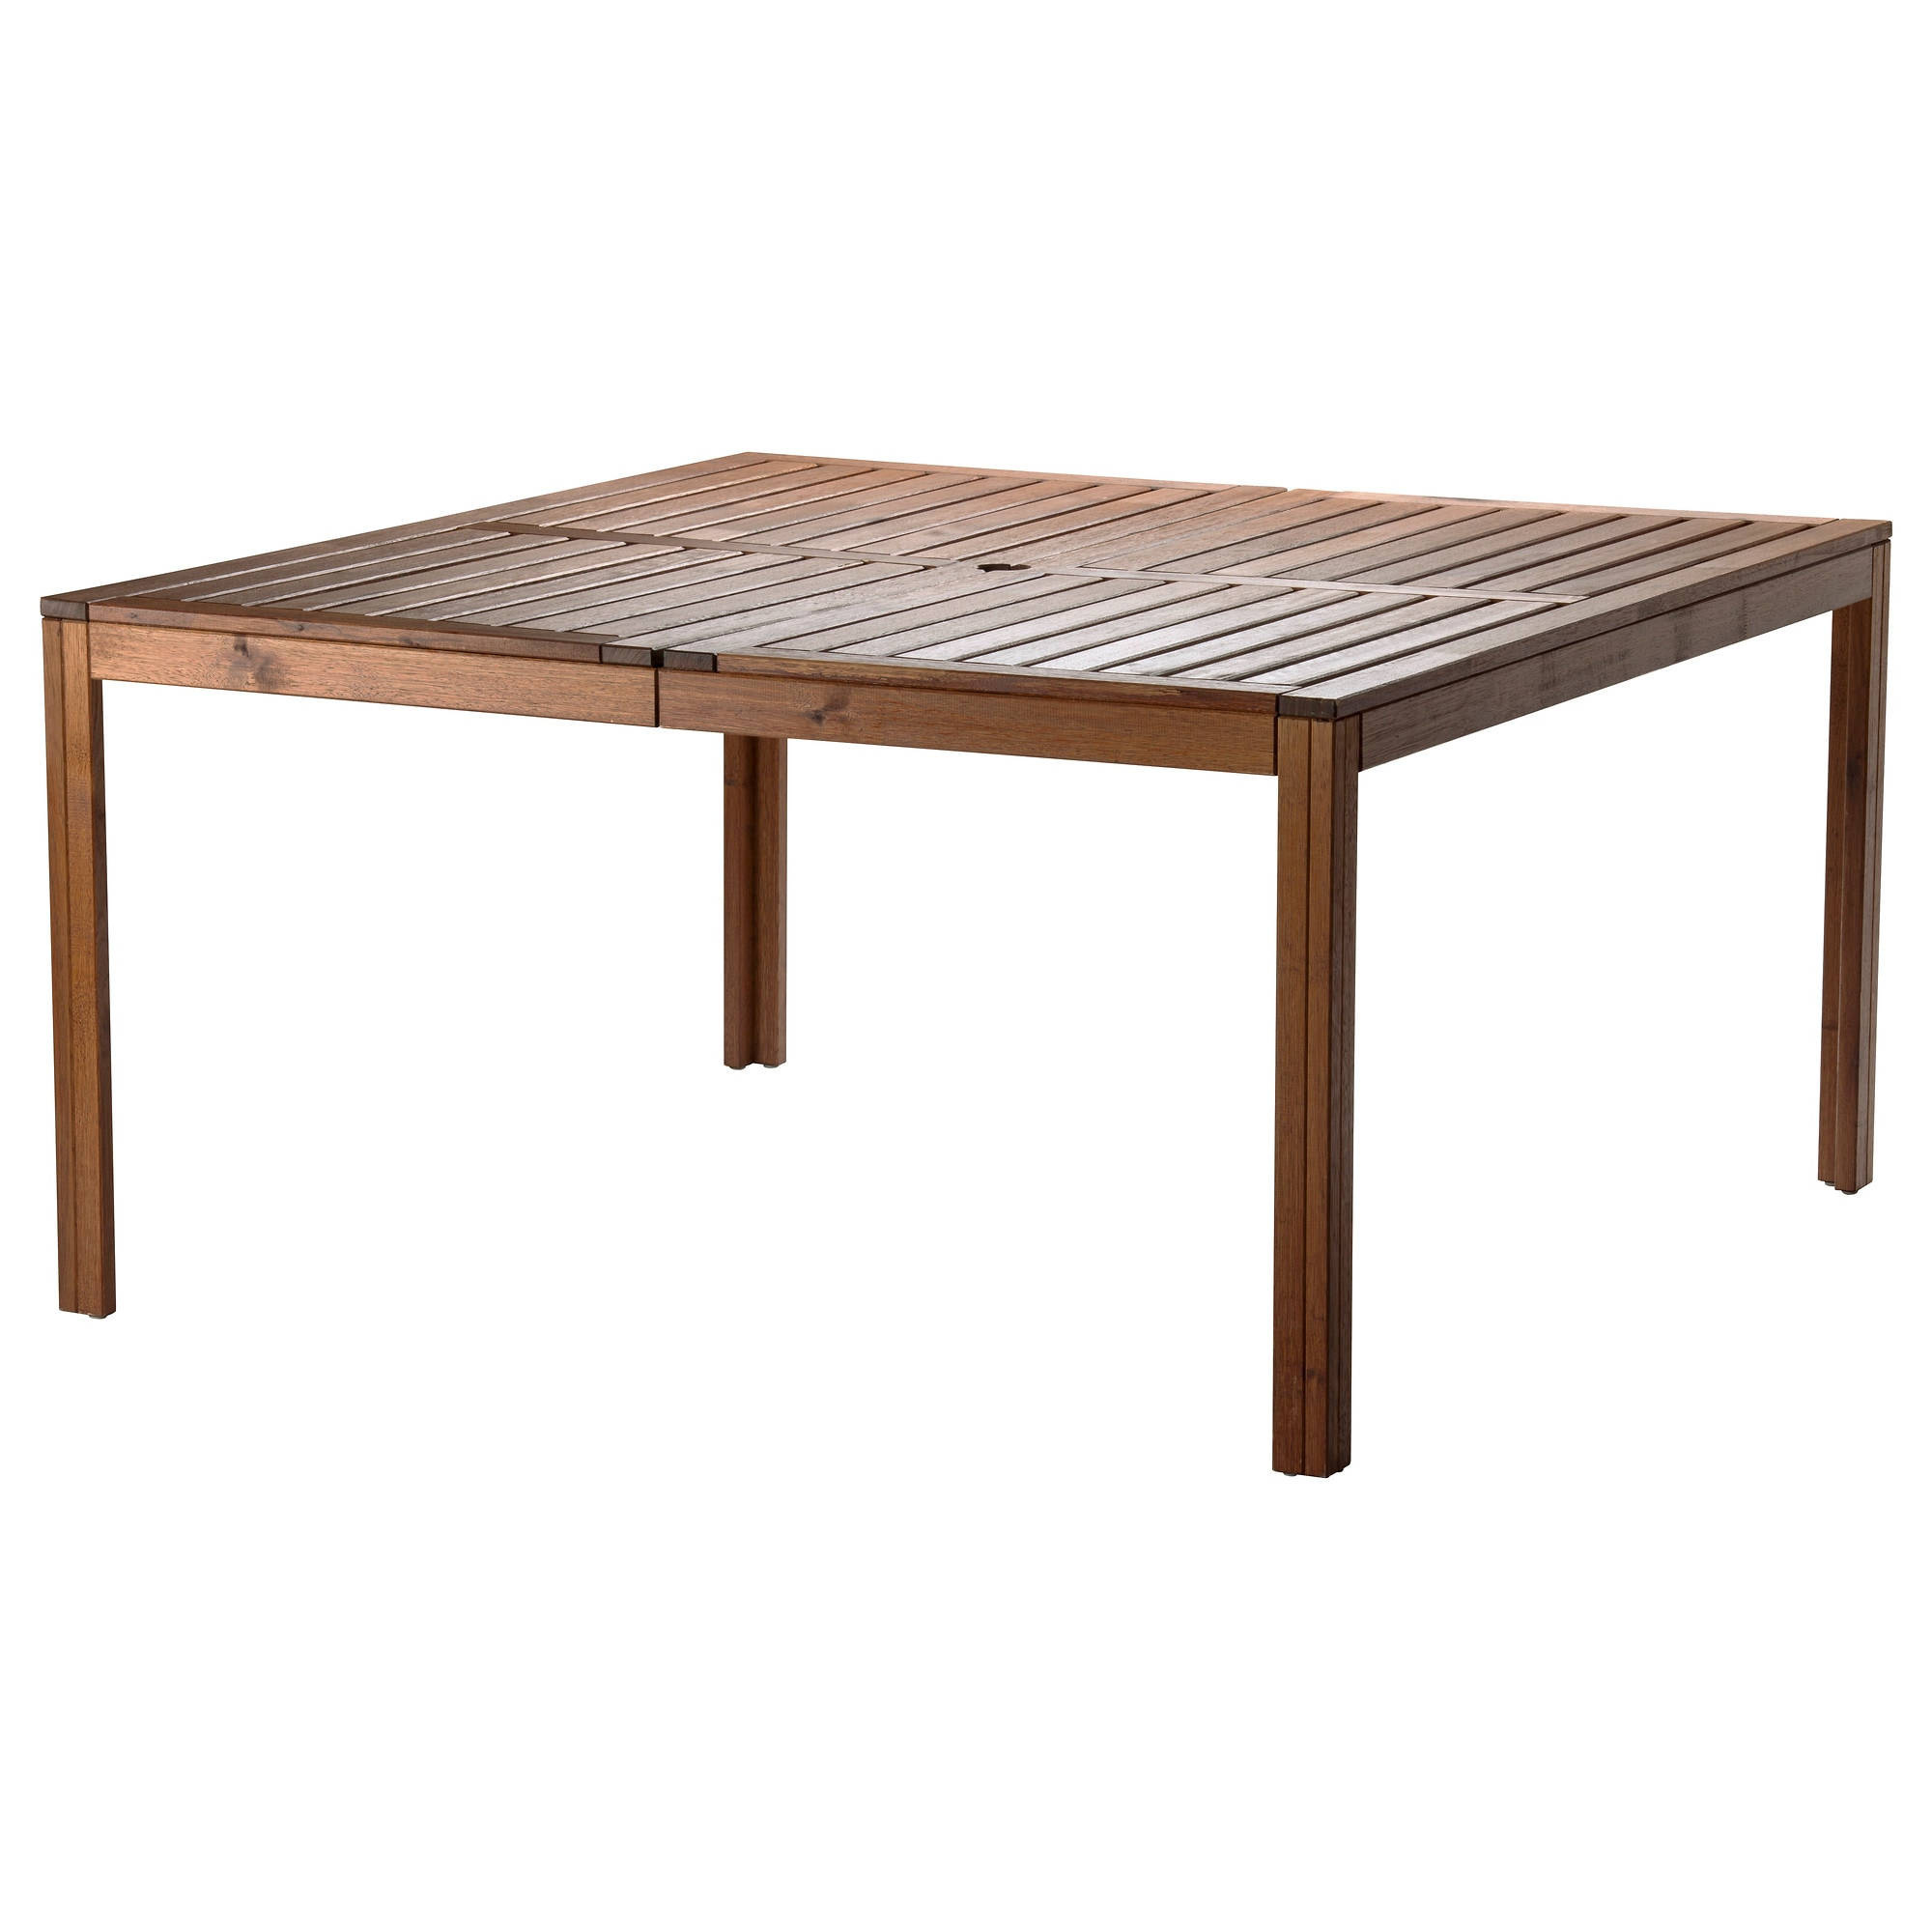 ÄPPLARÖ Table, Outdoor, Brown Brown Stained Length: 55 1/8  Part 40